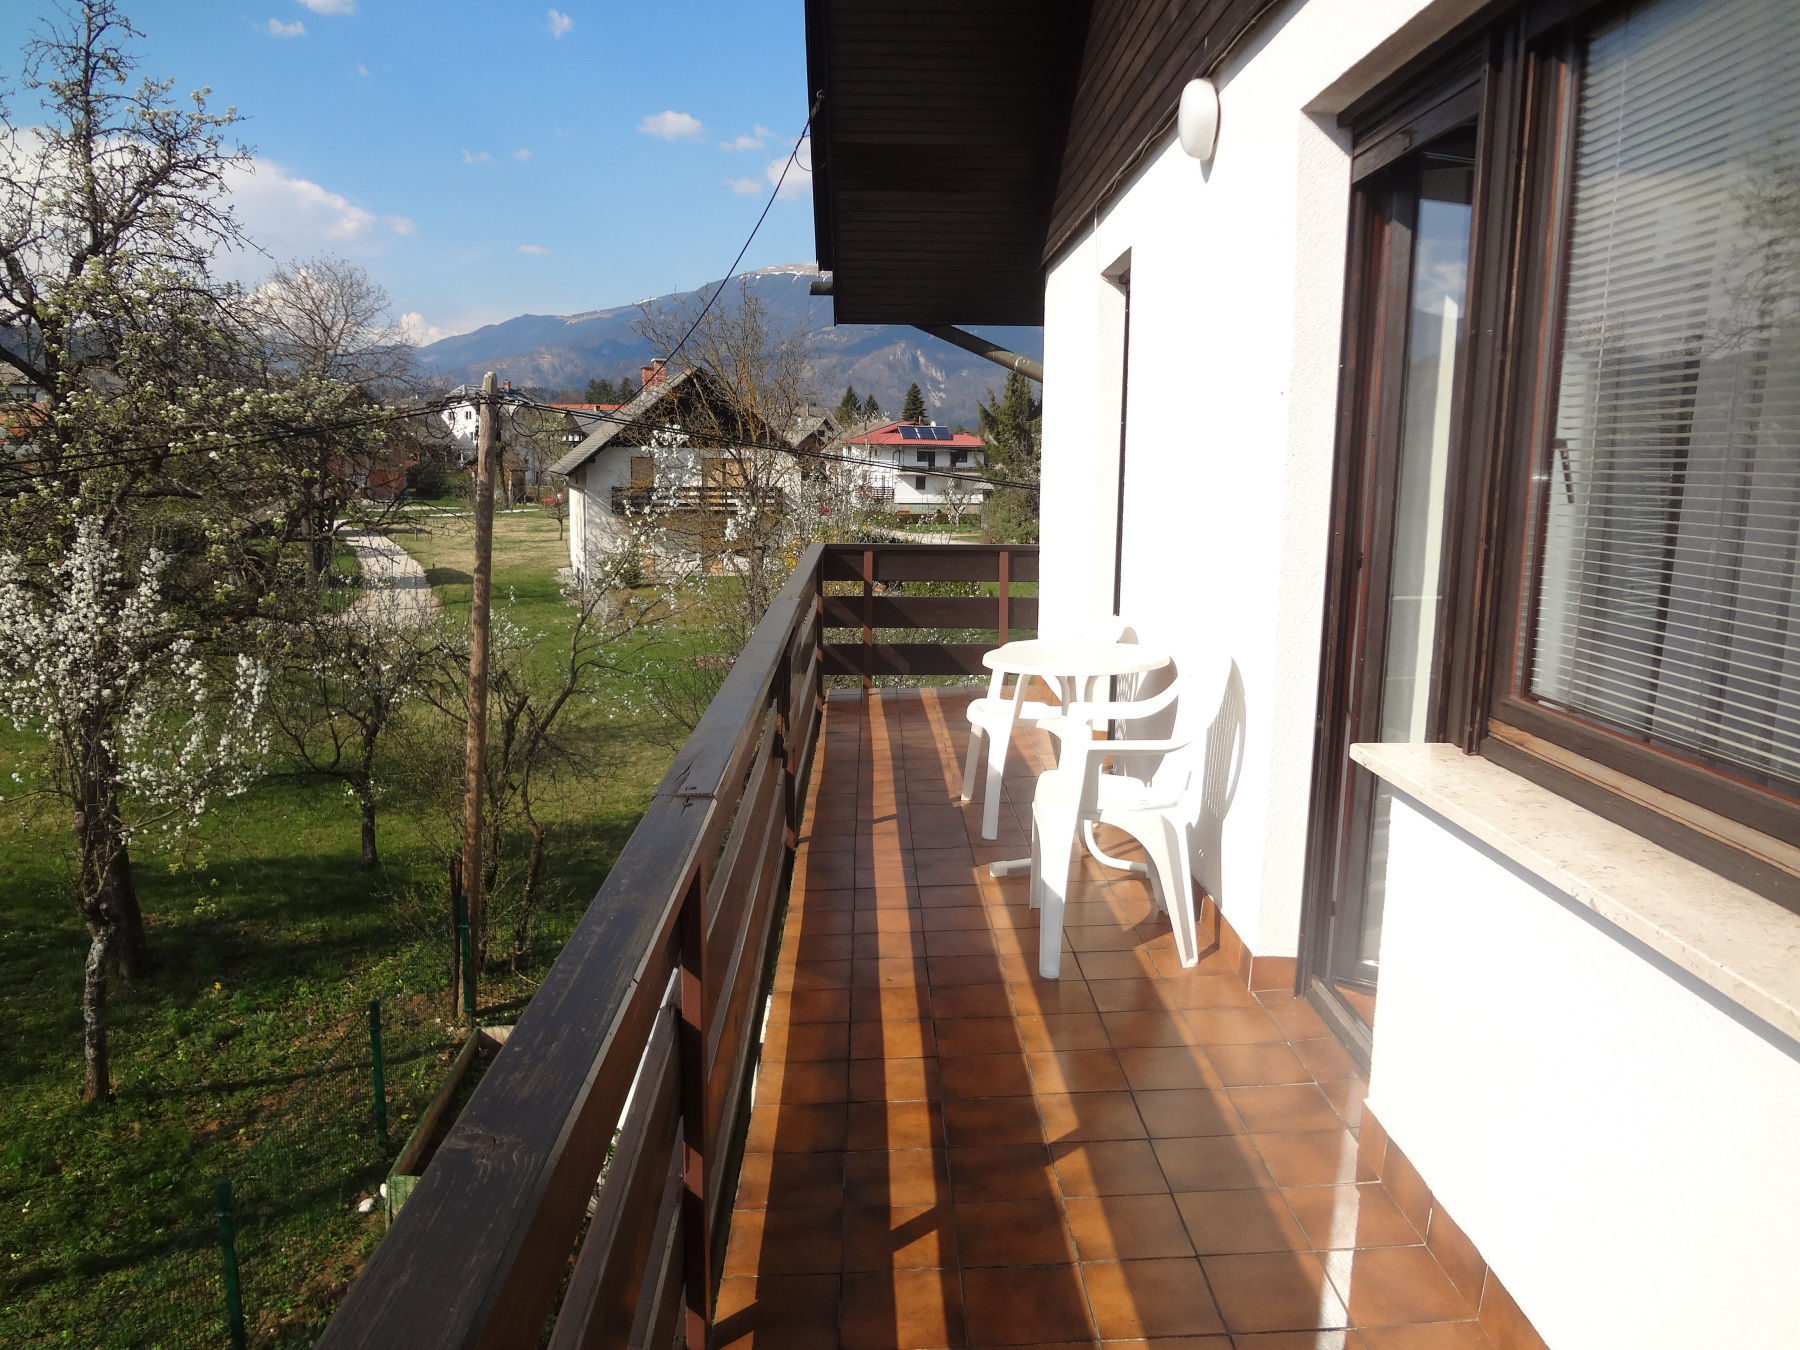 Balcony with garden furniture of the Fine Stay apartment in Lake Bled, Slovenia